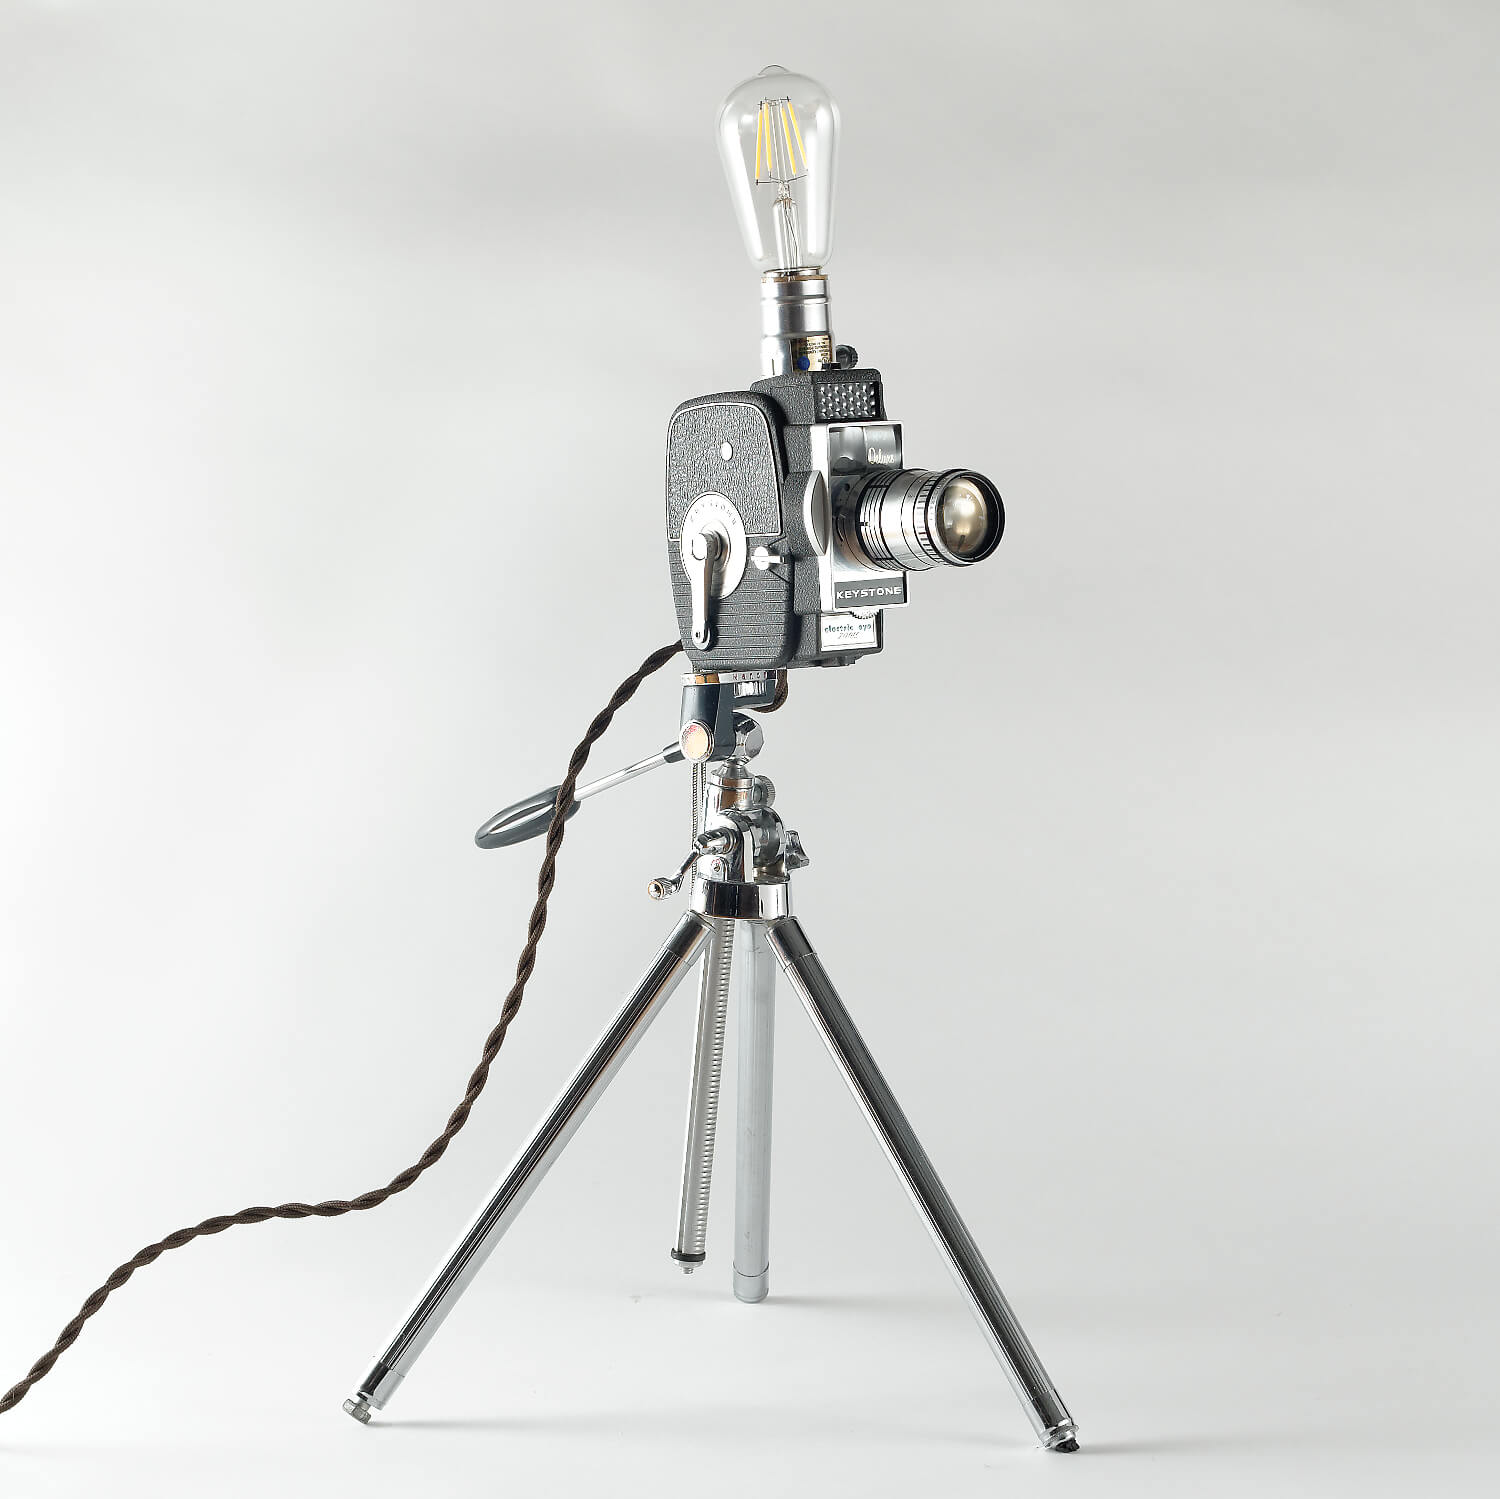 8Mm Vintage Camera upcycled keystone electric eye 8mm vintage camera lamp with dimmer and  tripod - foto inventos